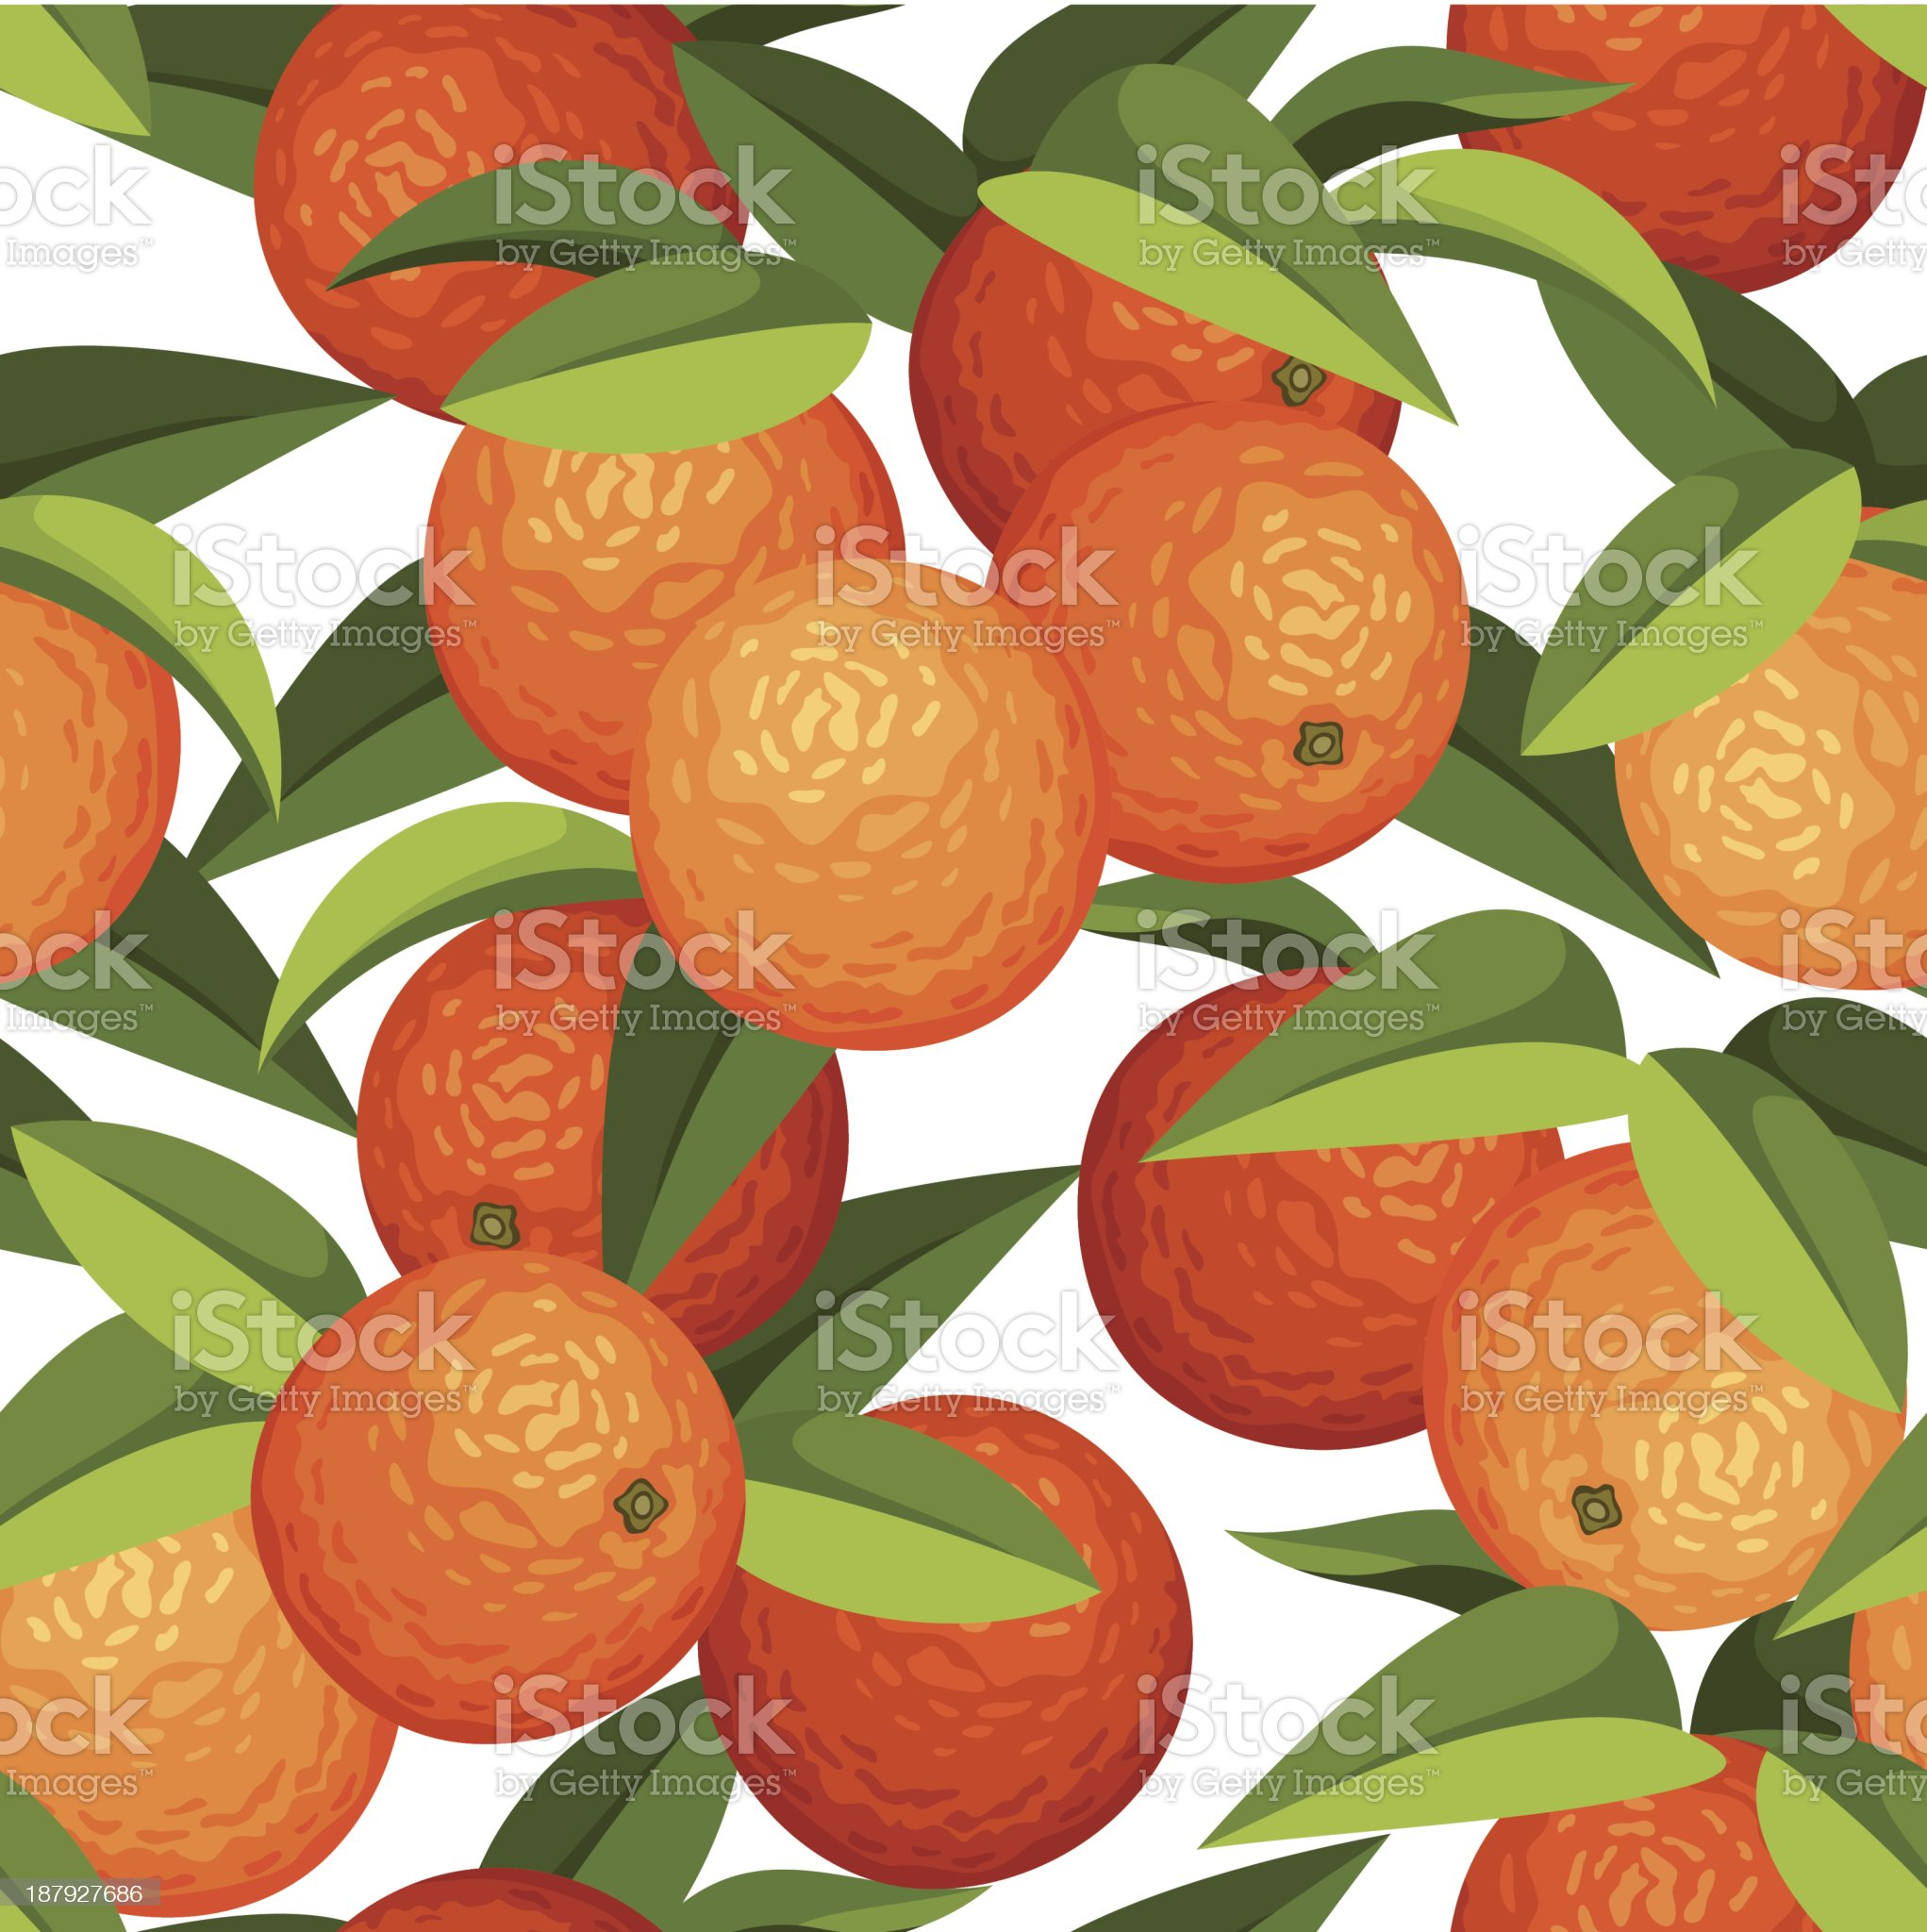 Seamless background with oranges and leaves. Vector illustration. royalty-free stock vector art